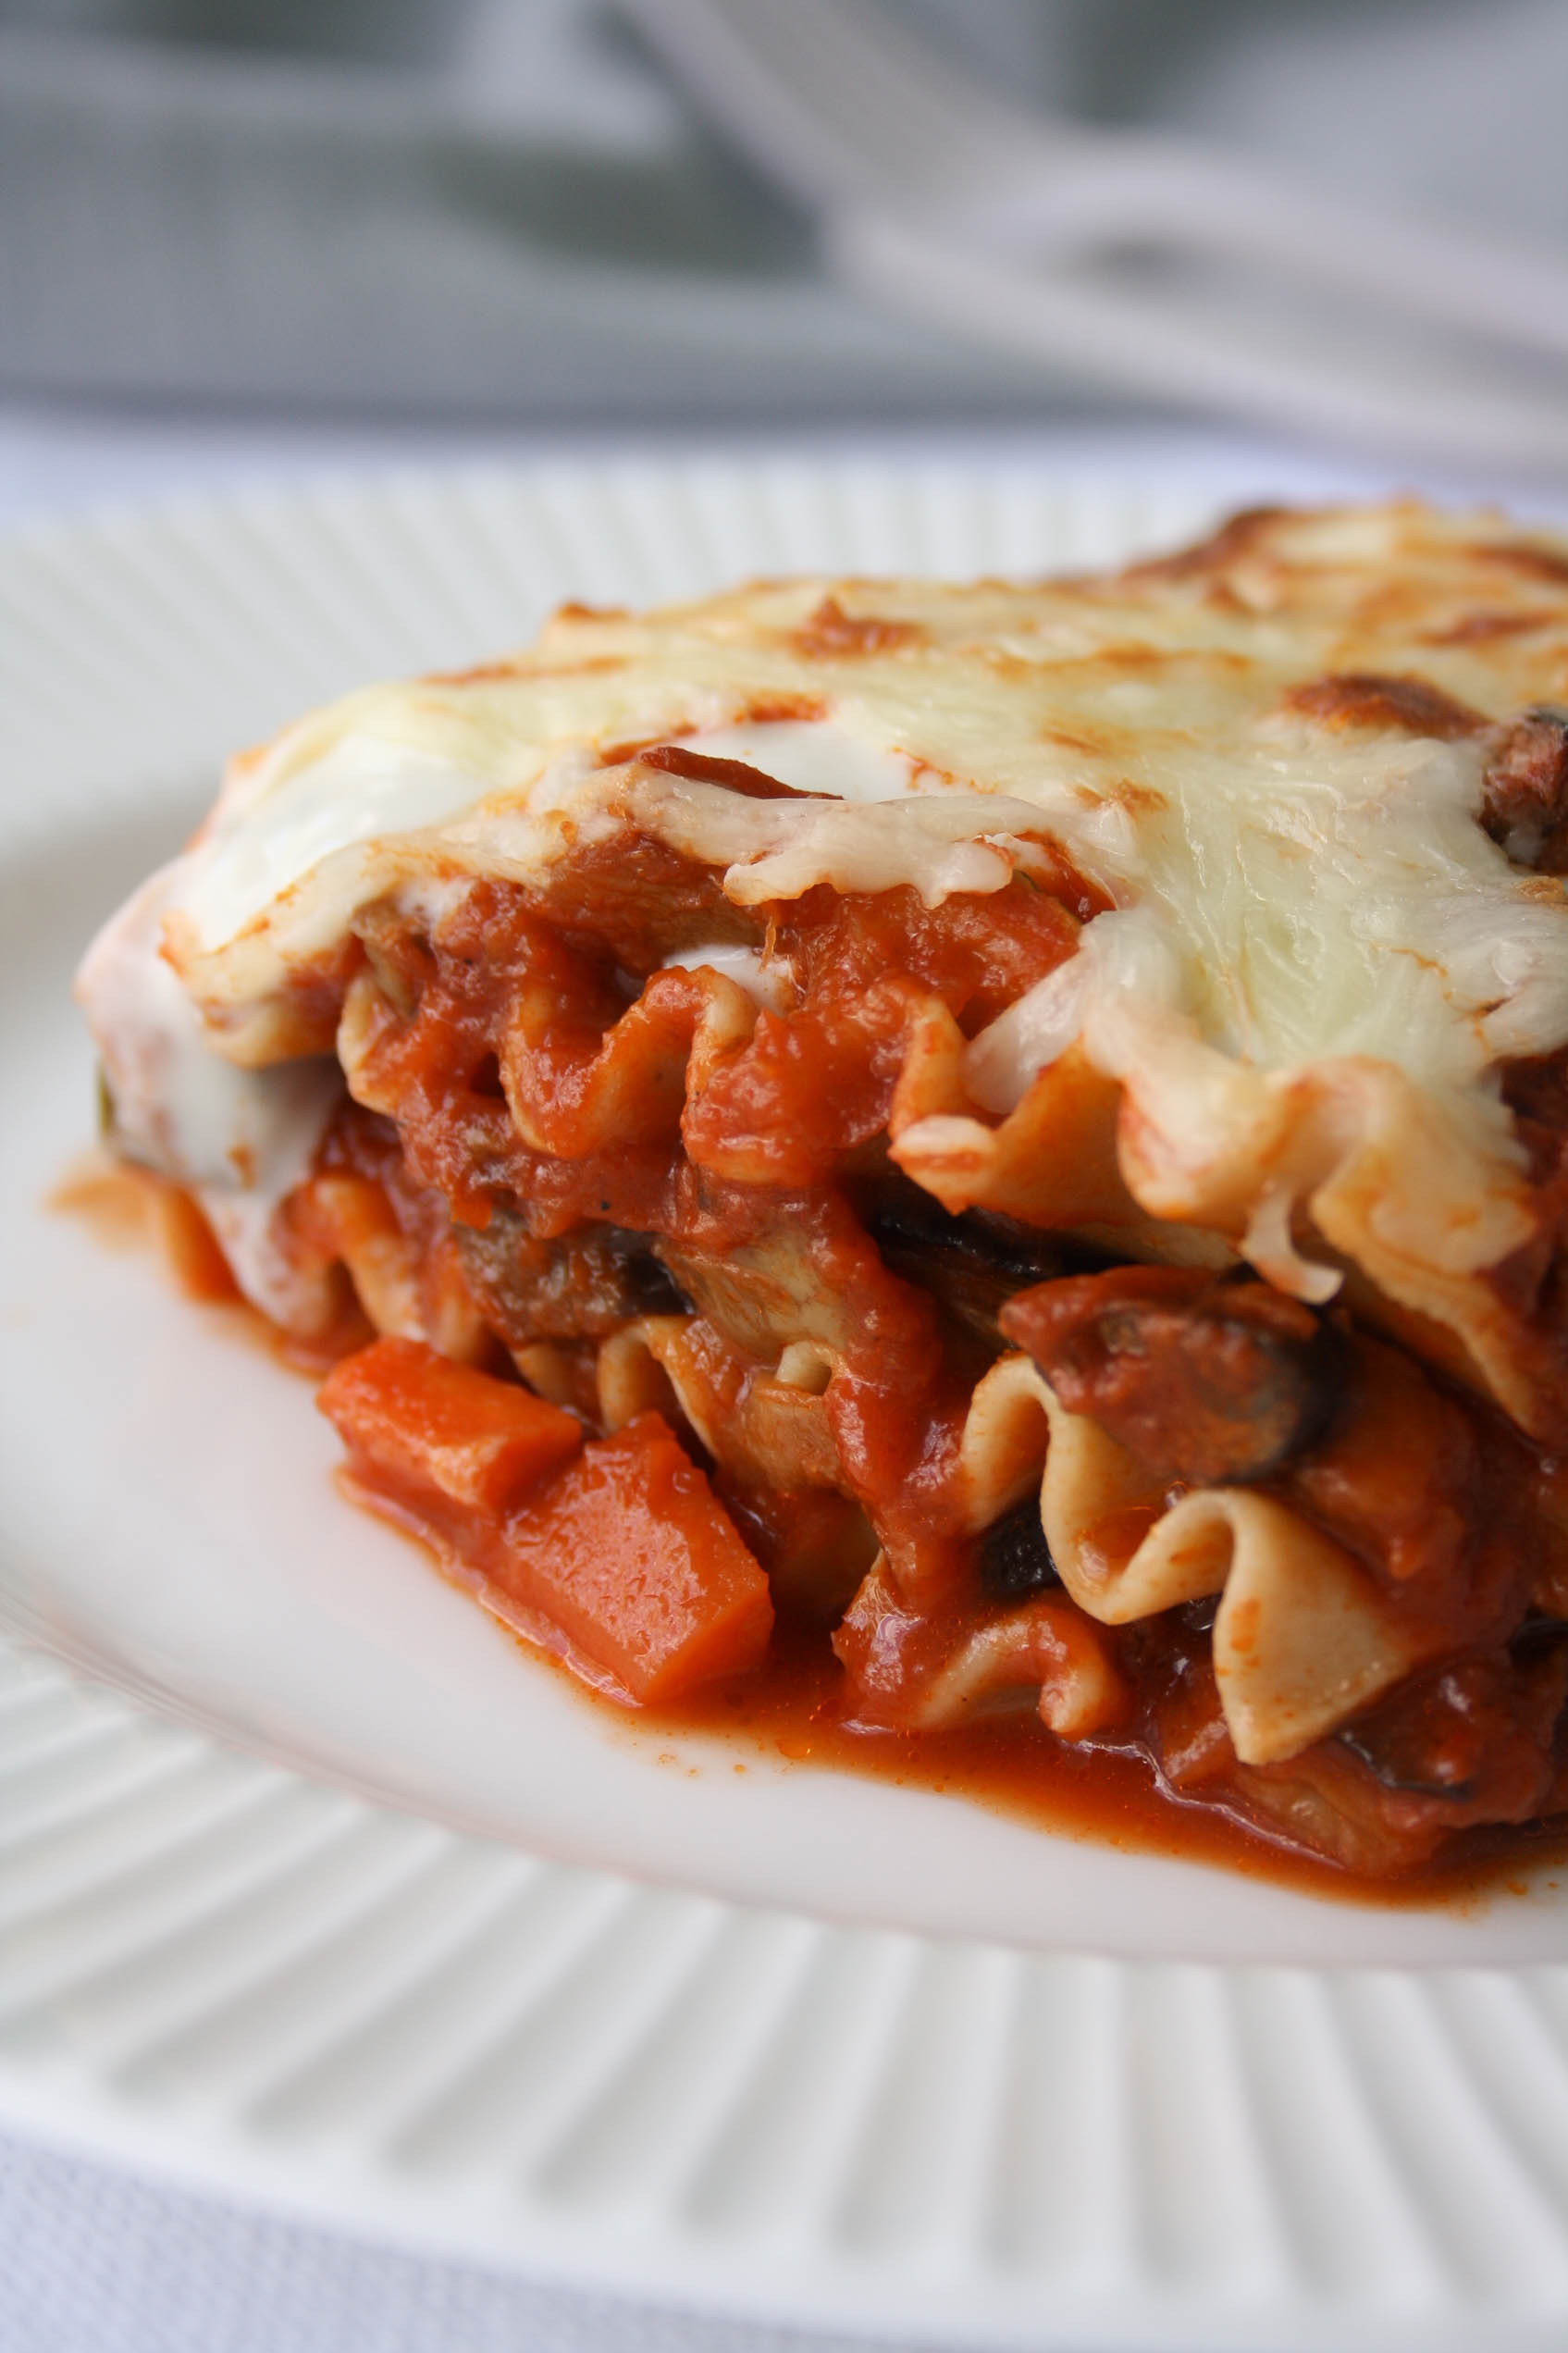 close up of the vegetable lasagna. layers of curly noodles with vegetables in tomato sauce and cheese and white sauce on top